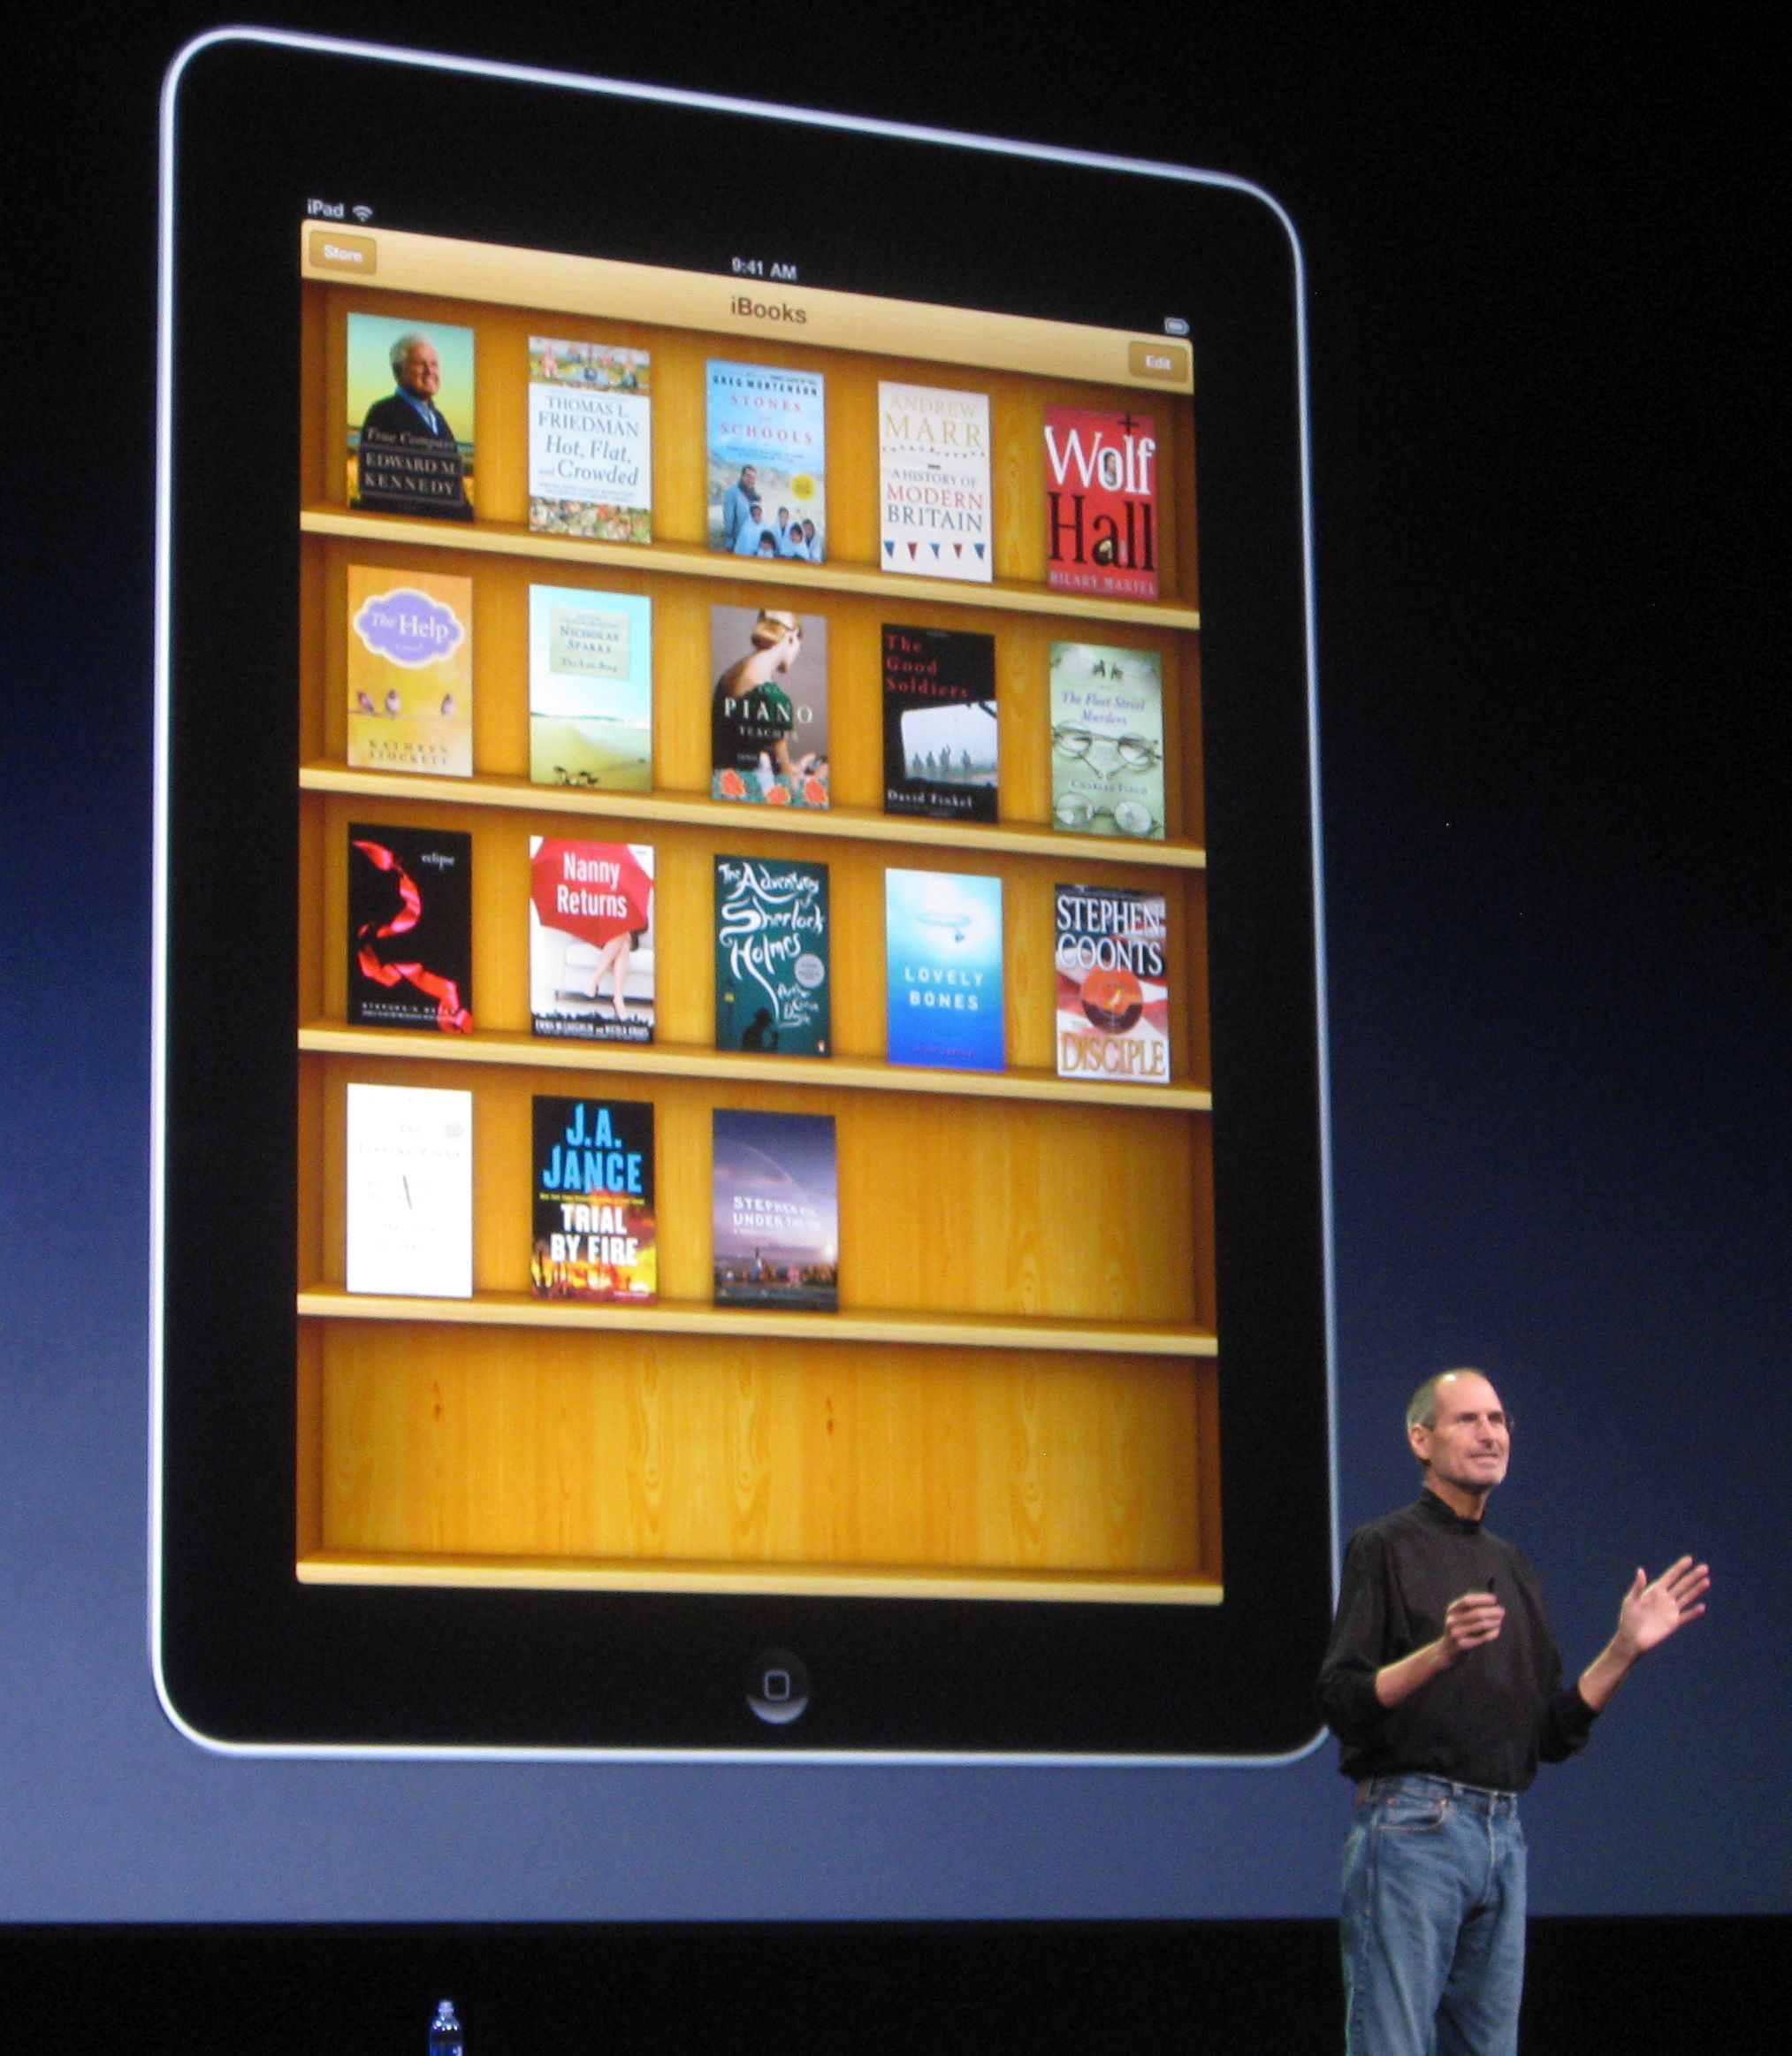 Justice Dept. finally does something about predatory pricing in the book biz by announcing it's suing ... Apple and the publishers?